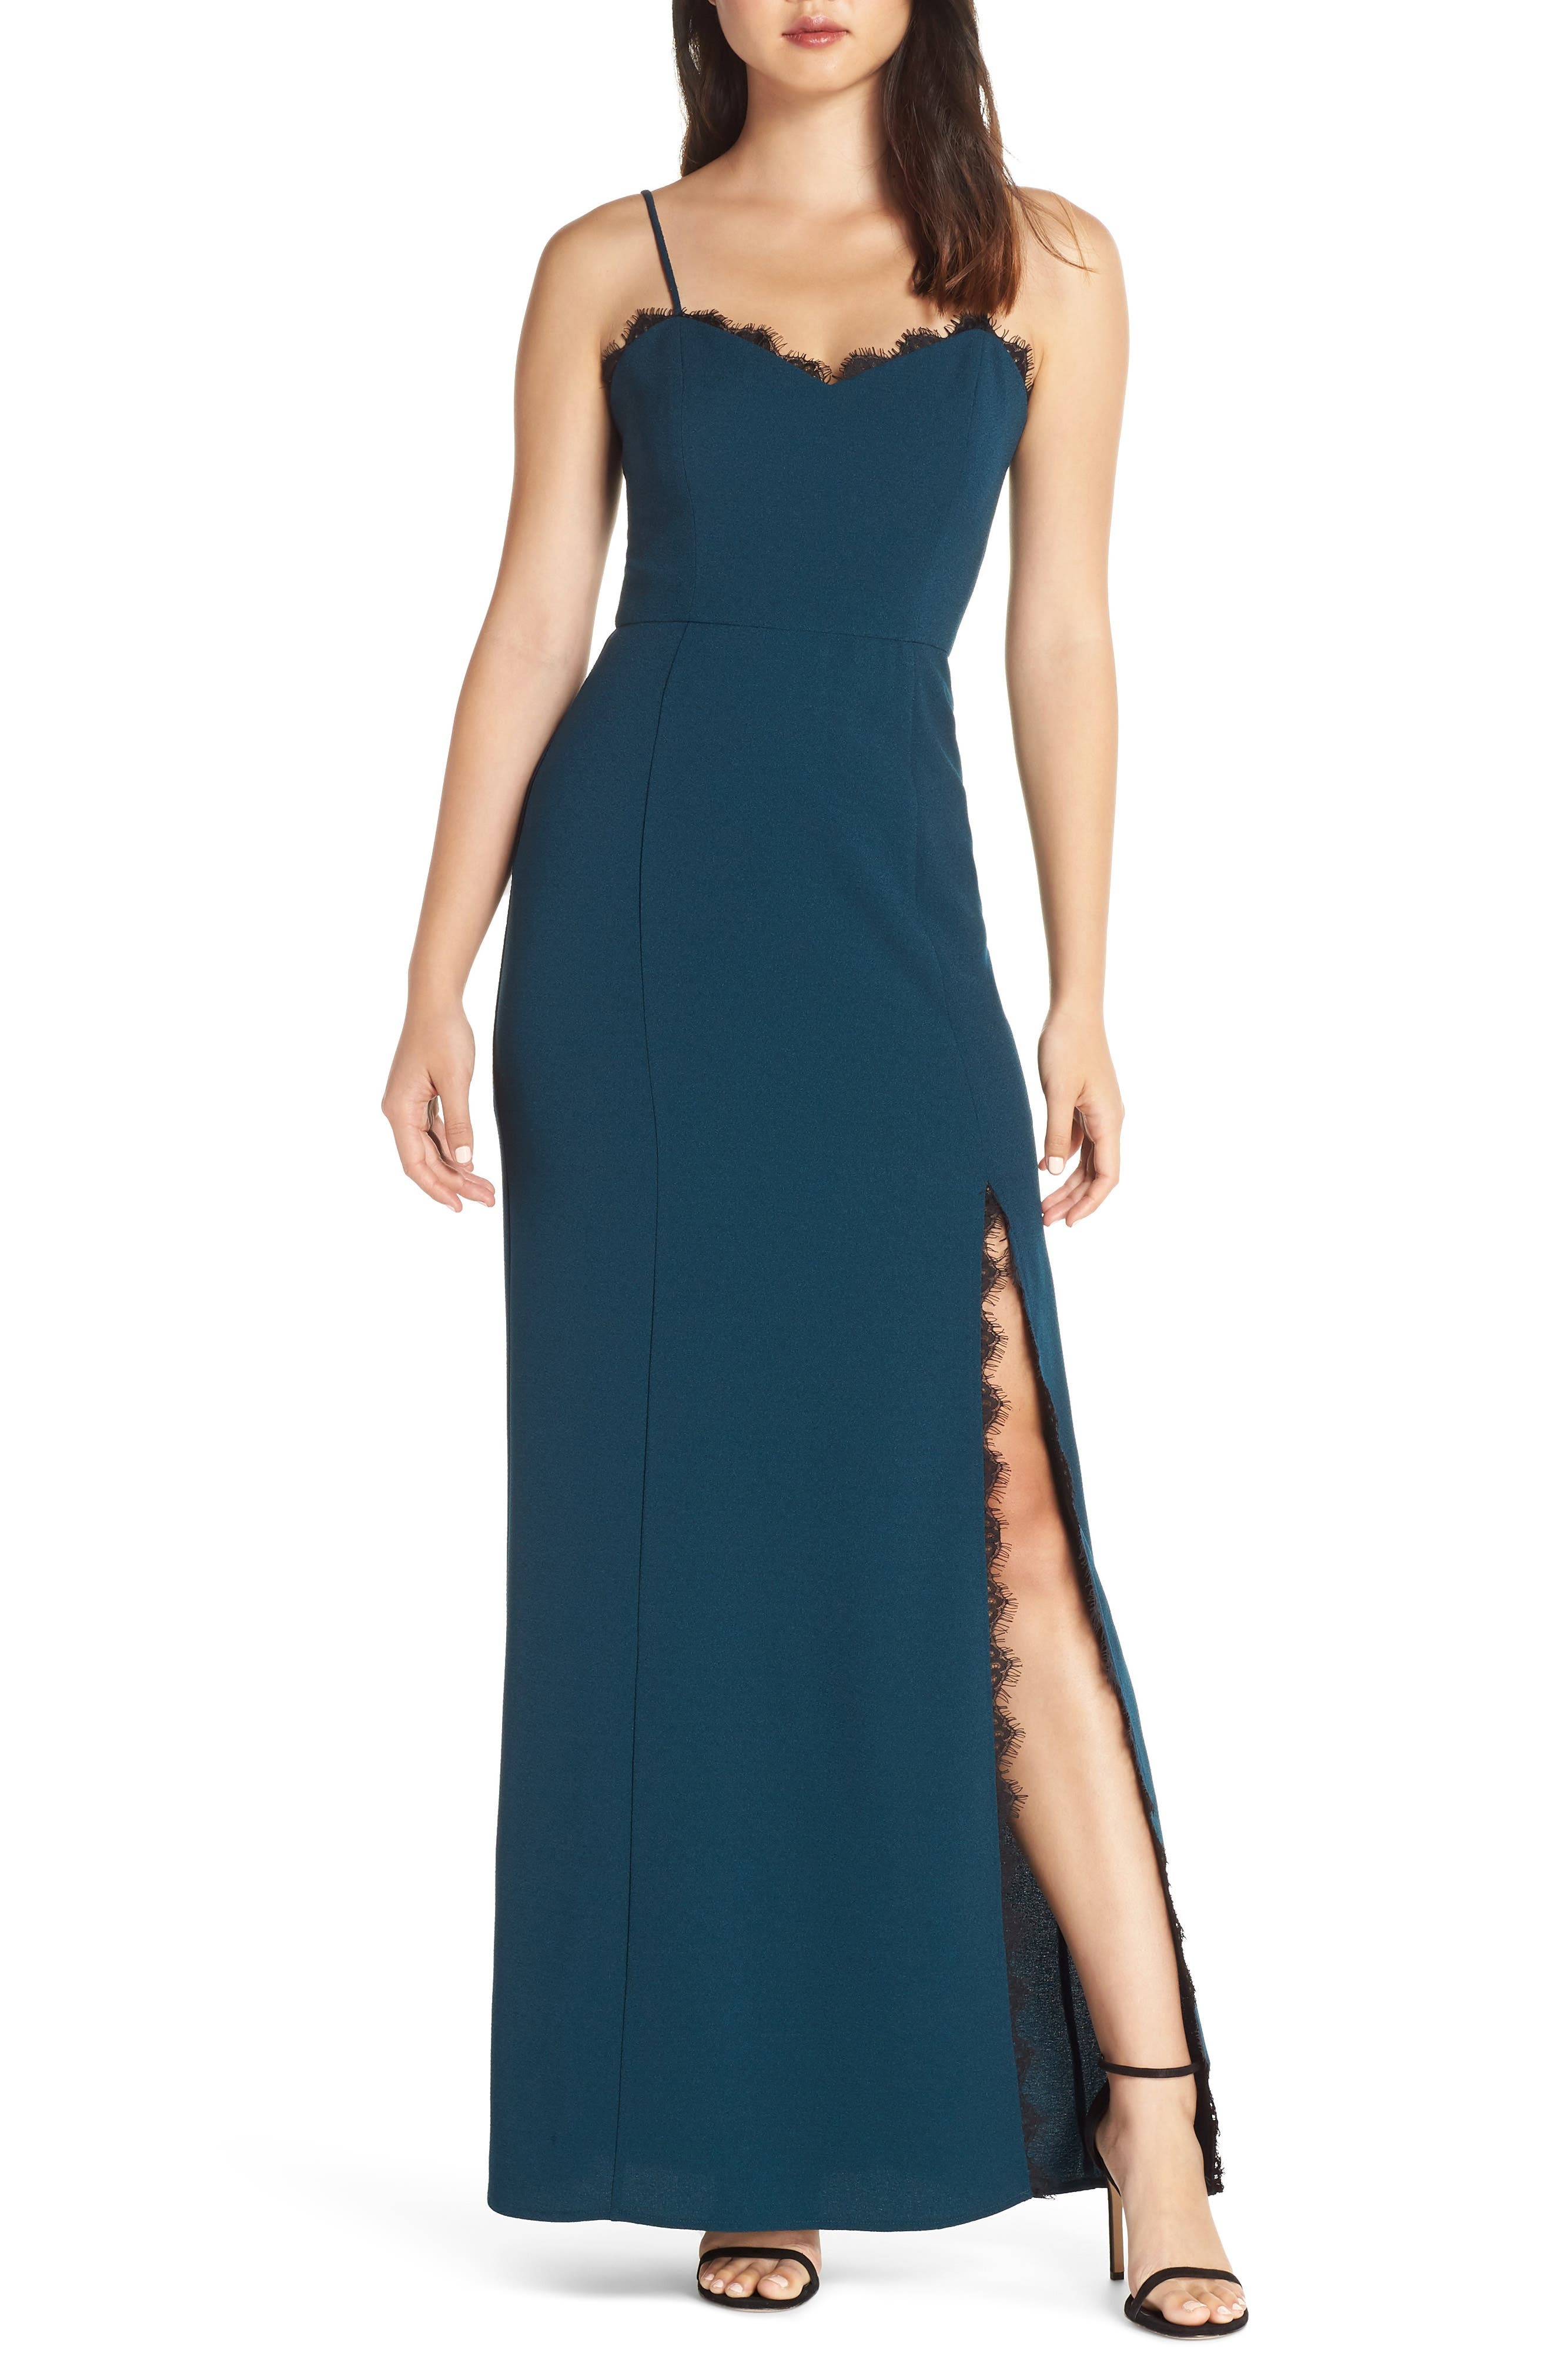 WAYF The Mia Lace Trim Front Slit Gown in Dark Teal